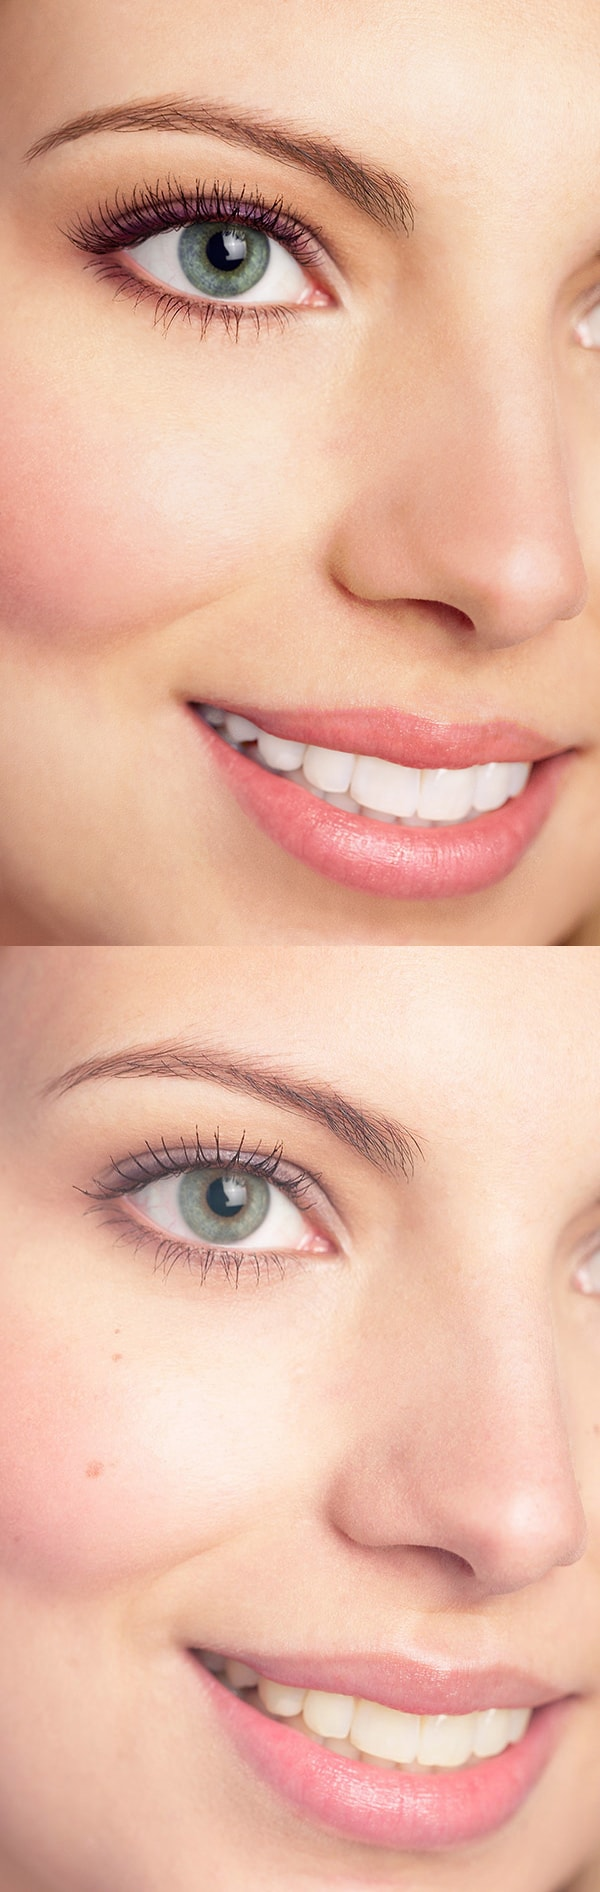 women image retouch before and after